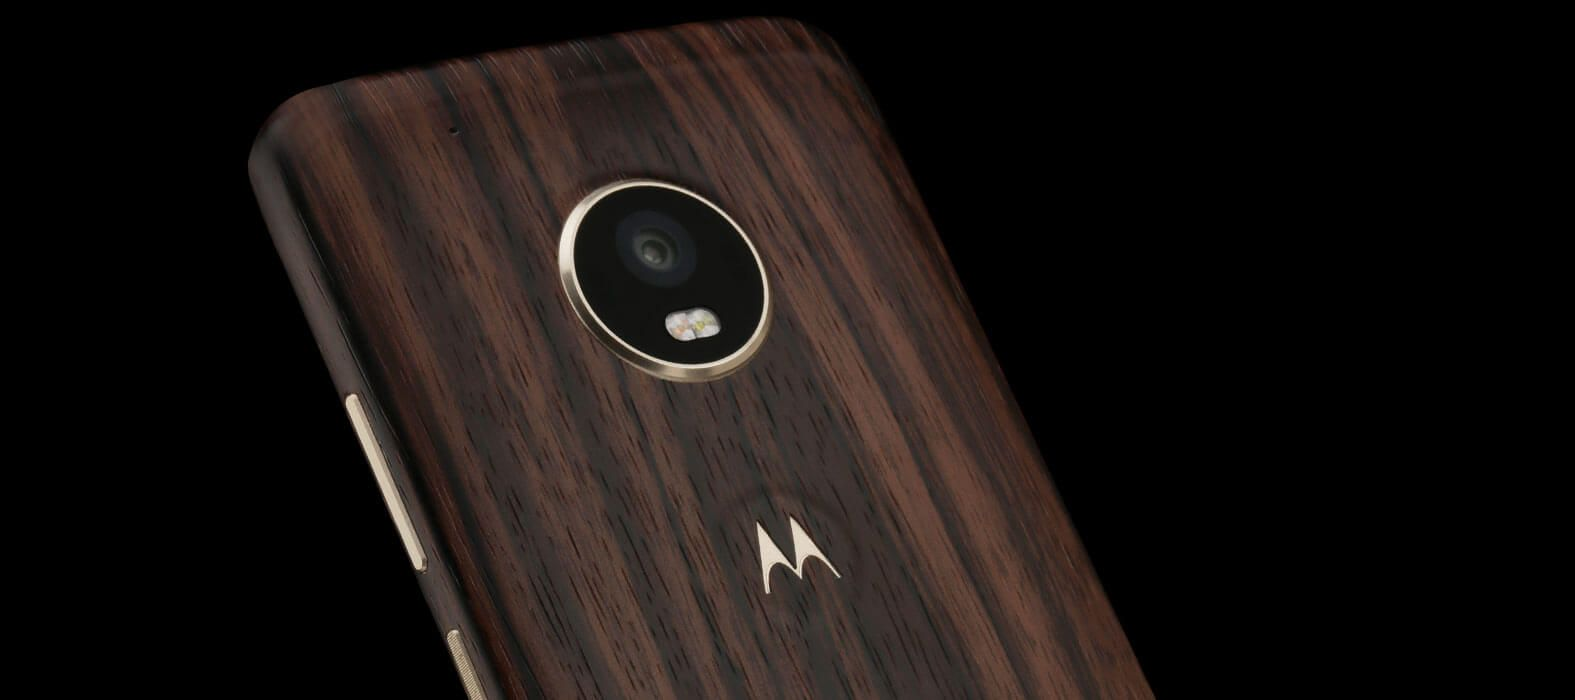 Moto G5 Plus Ebony wood skins & wraps